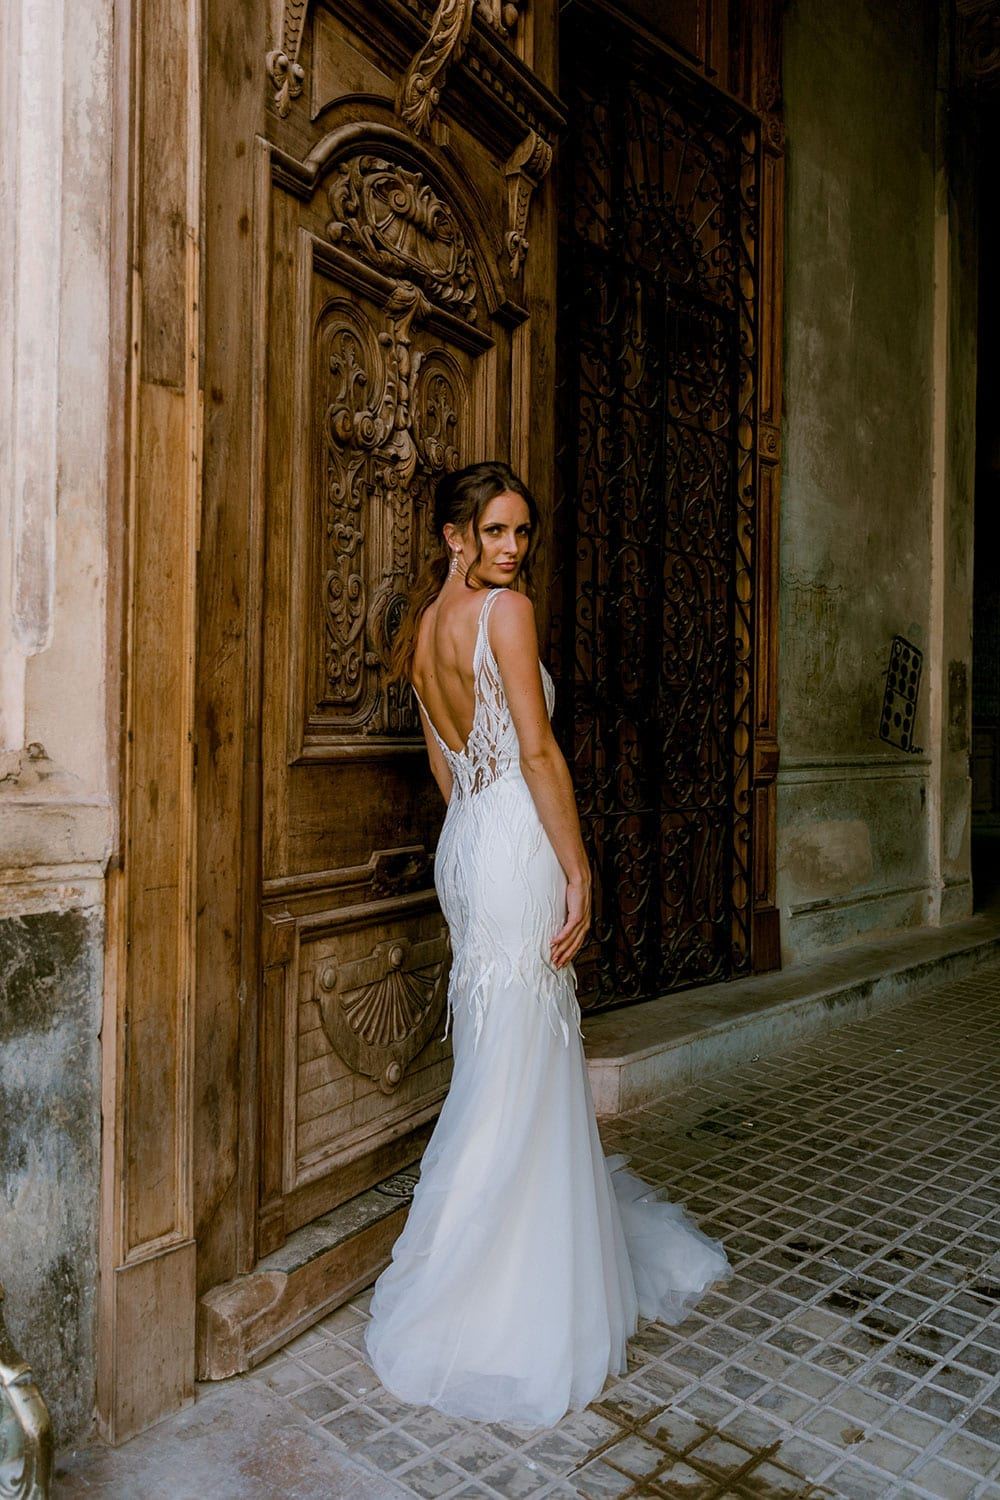 Model wearing Vinka Design Irina Wedding Dress, a n Embroidered Mermaid Lace Wedding Gown in front of a large old open wooden door in Havana facing inwards to reveal back of dress